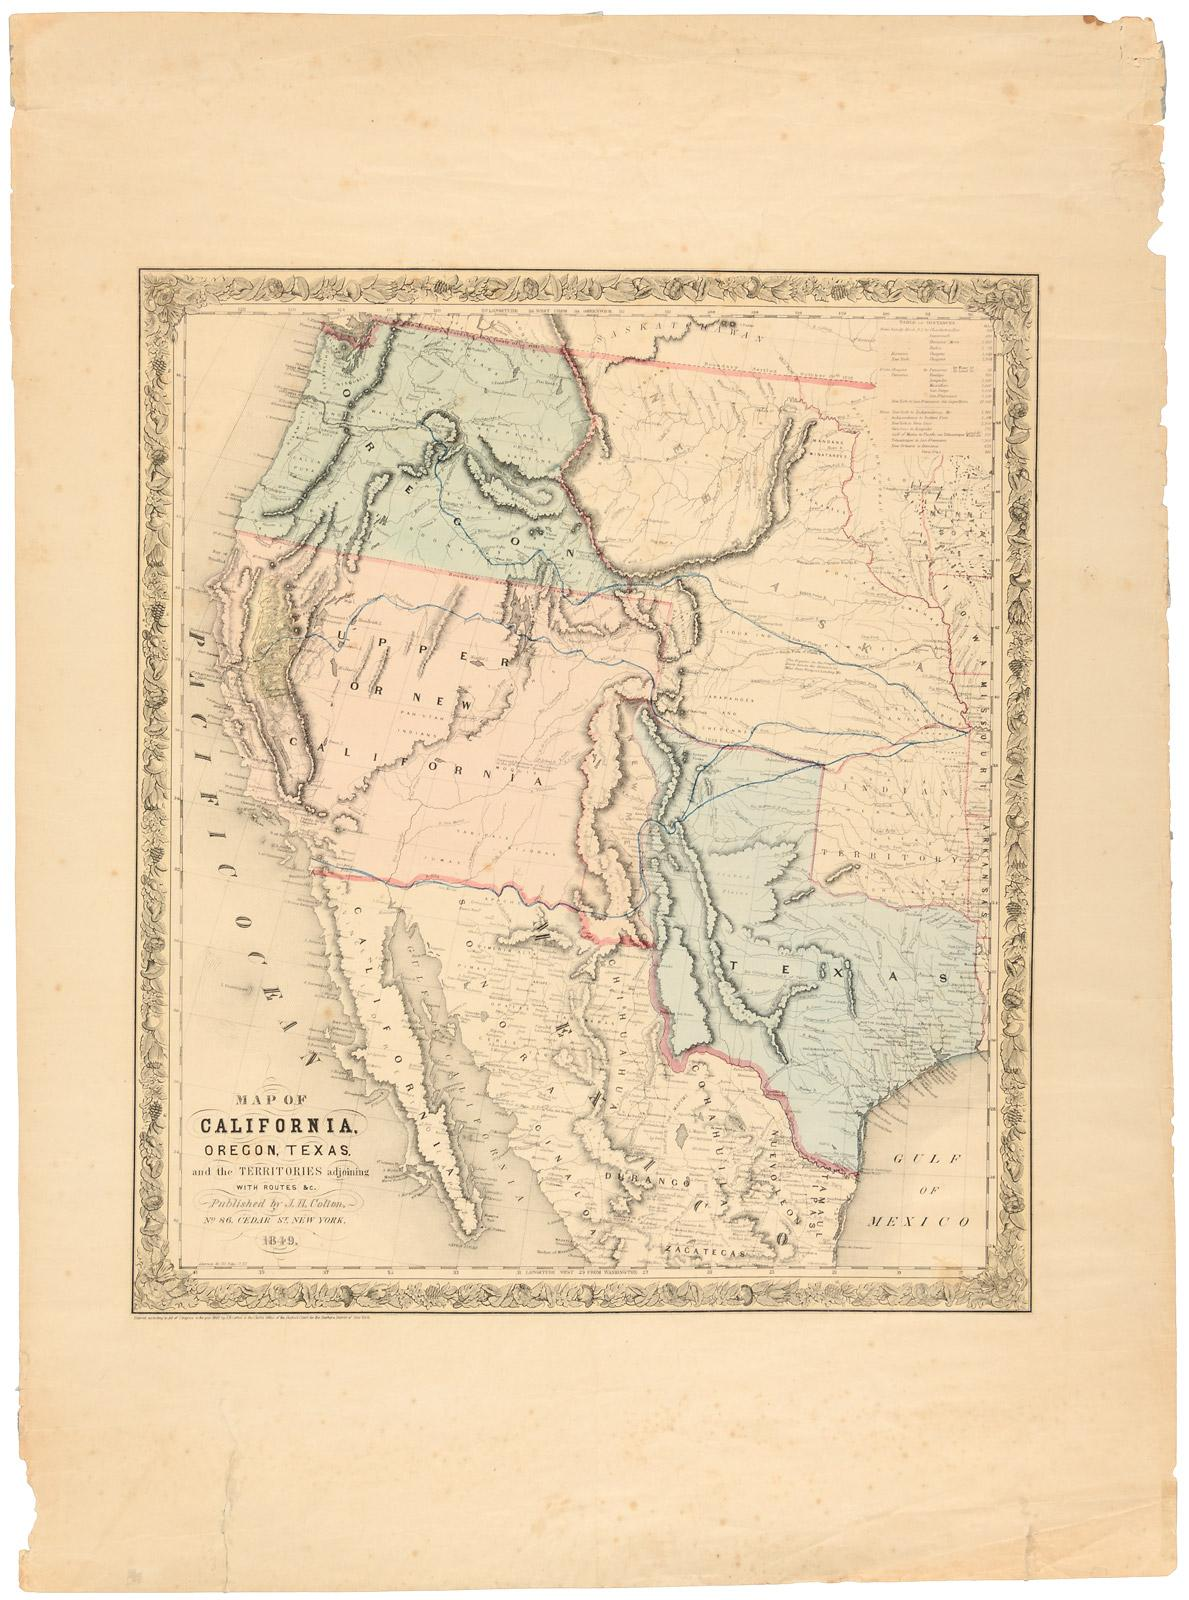 Map Of California To Oregon.Map Of California Oregon Texas And The Territories Adjoining With